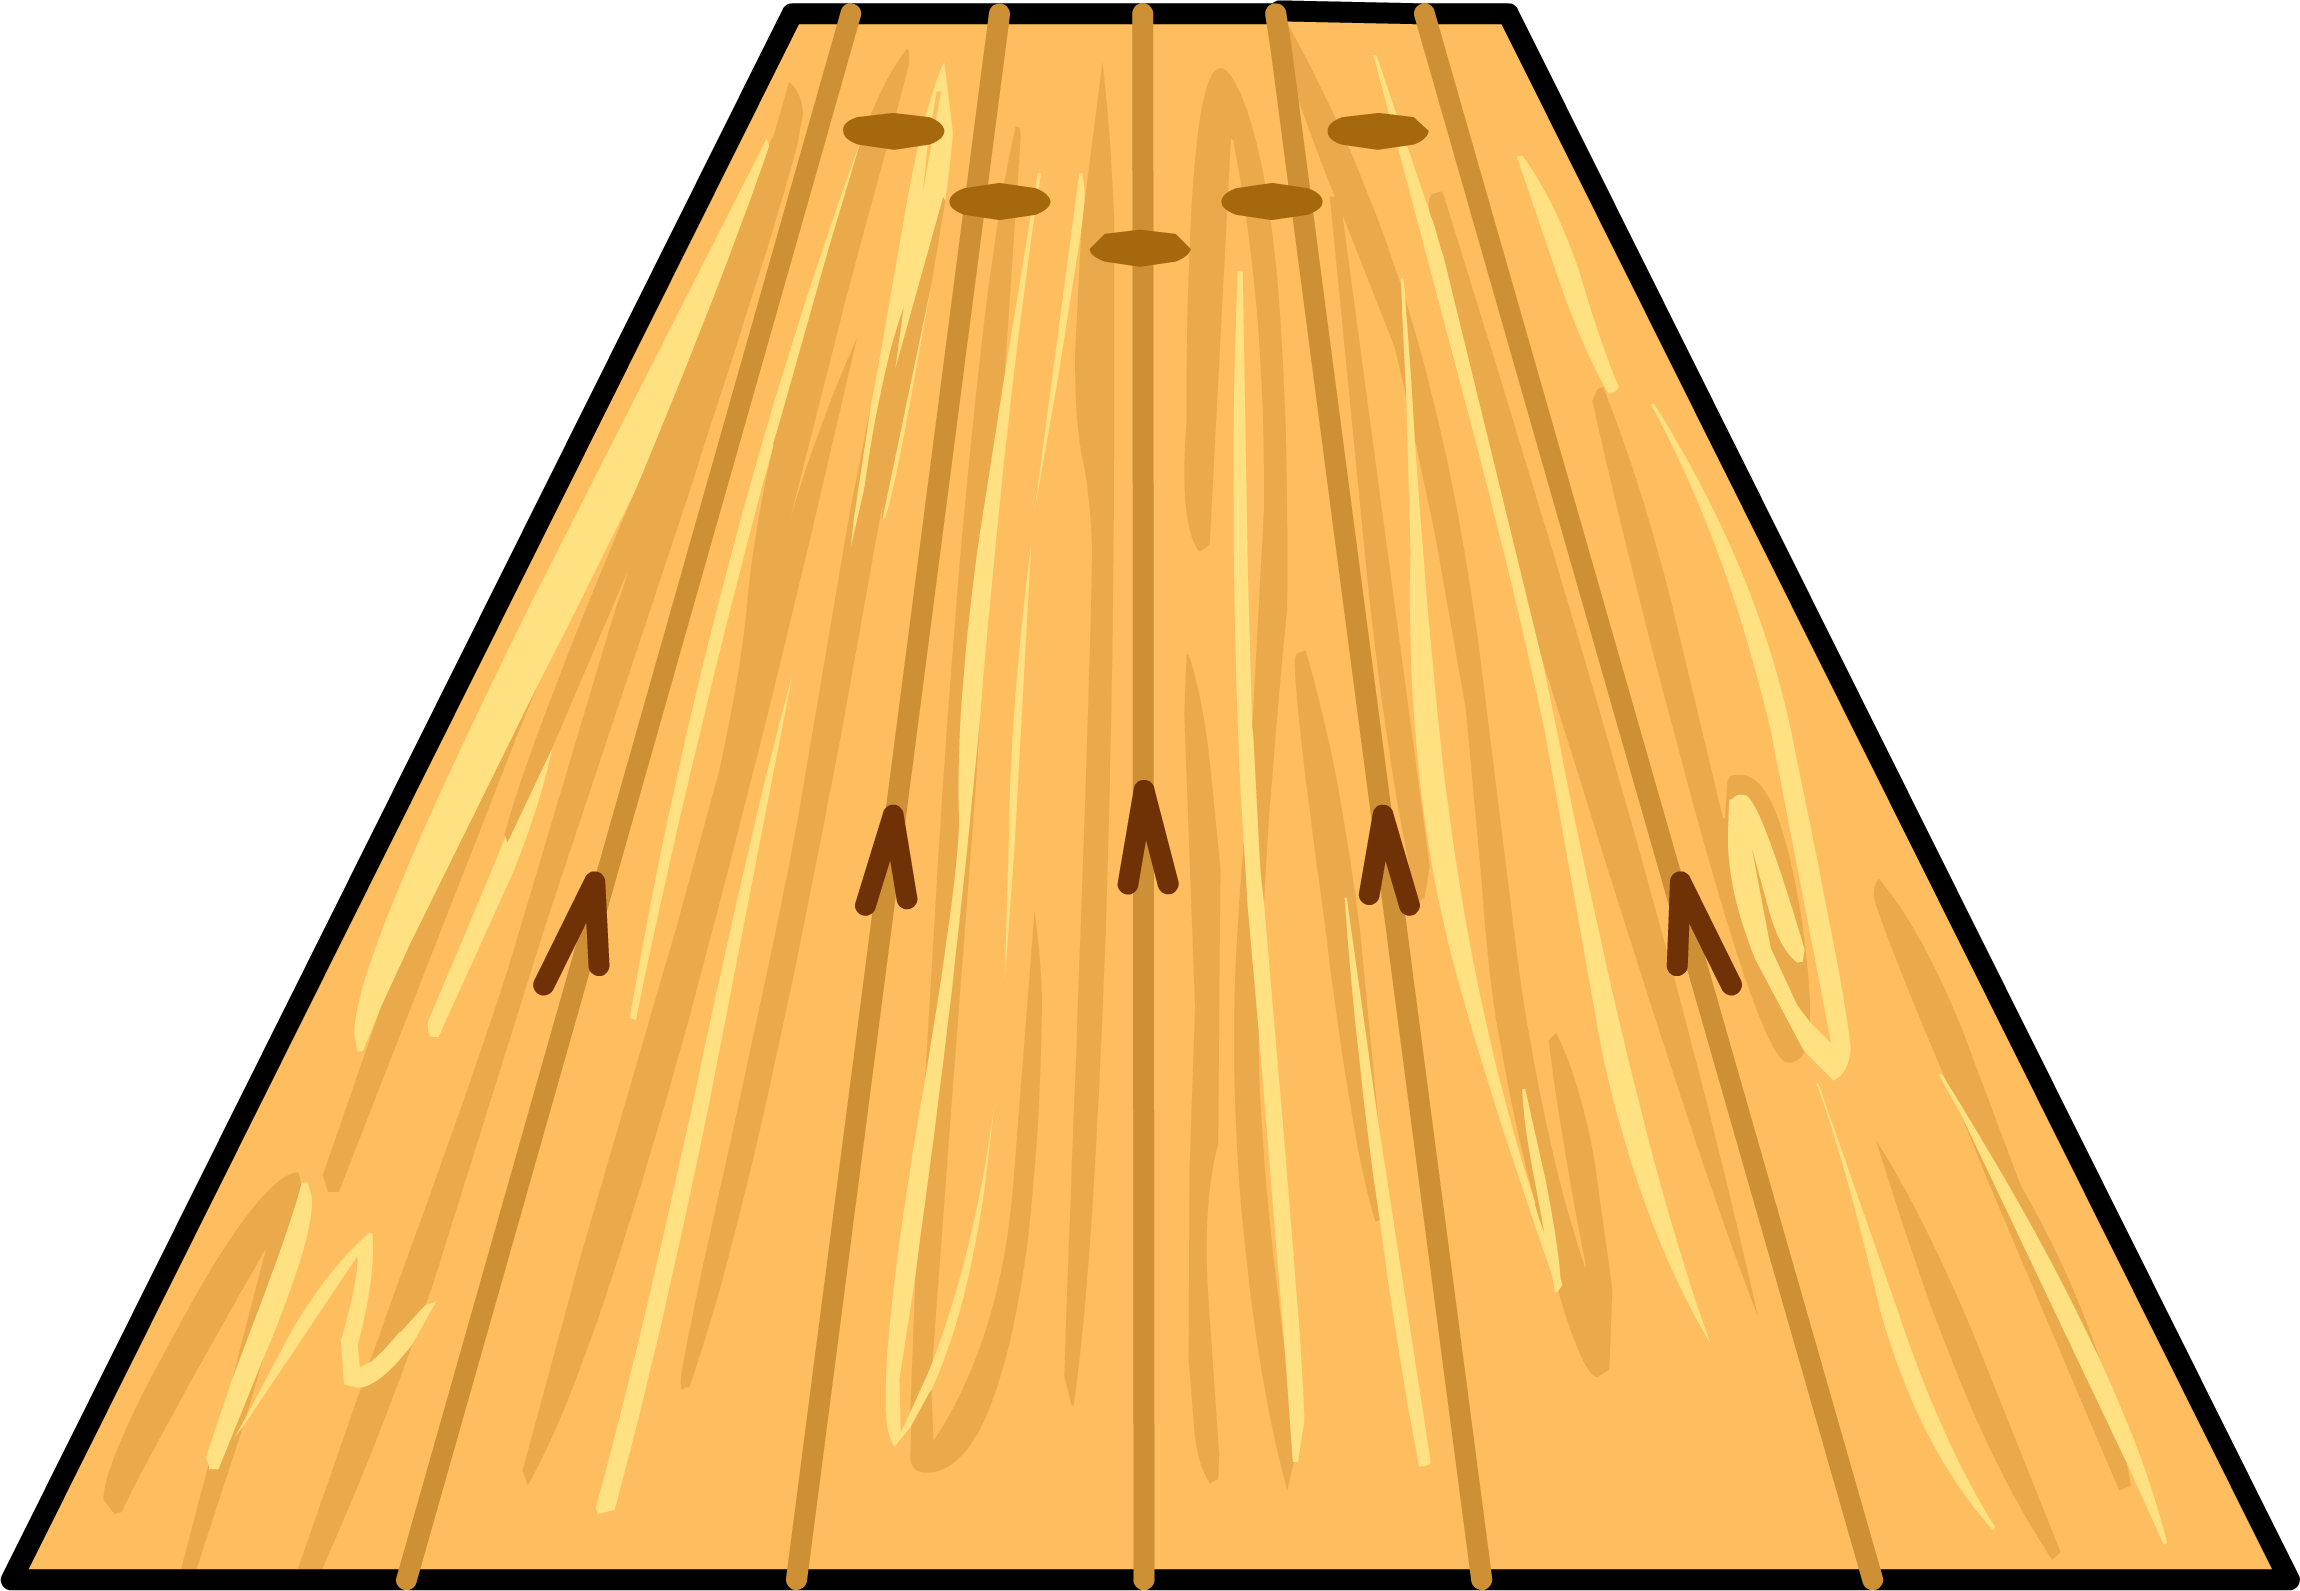 Bowling lane png. Transparent images pluspng alleypng